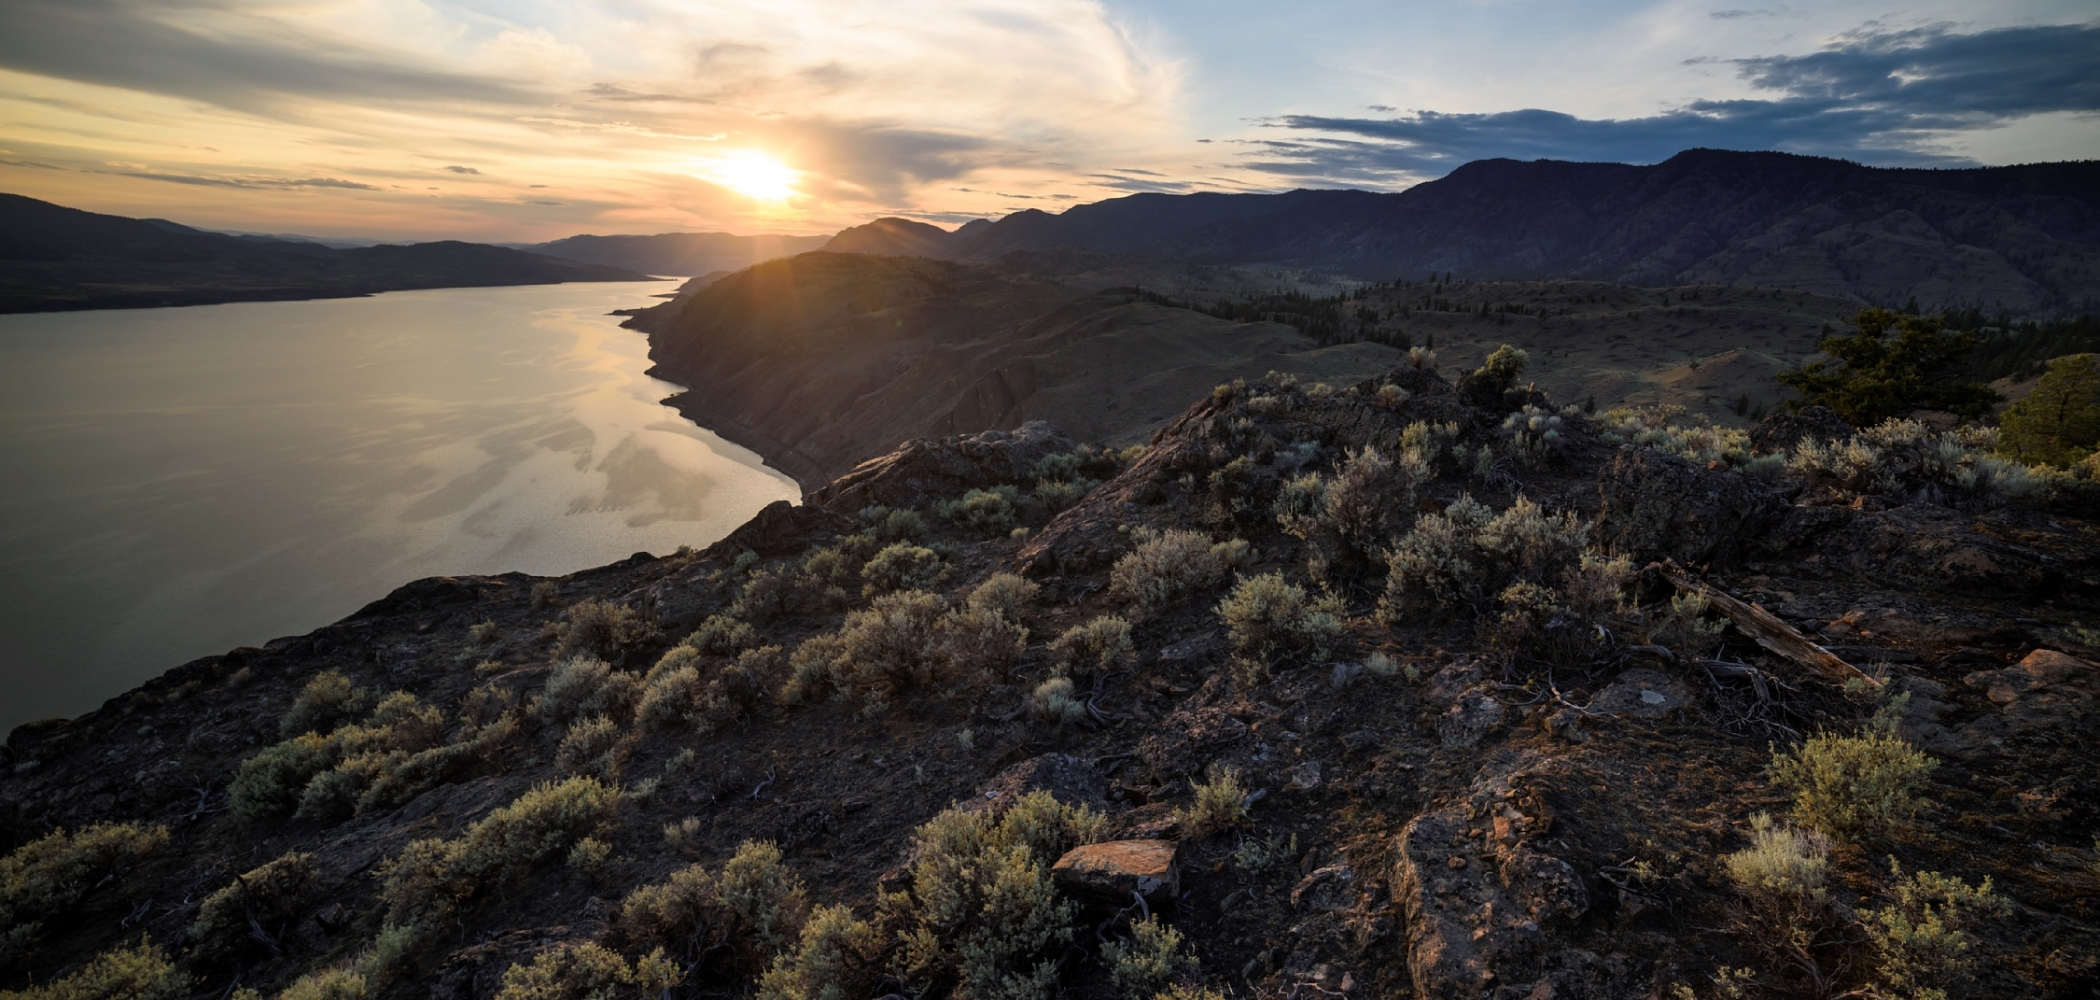 Sunset from atop Battle Bluff, Lac Du Bois Grasslands Protected Area, Kamloops British Columbia